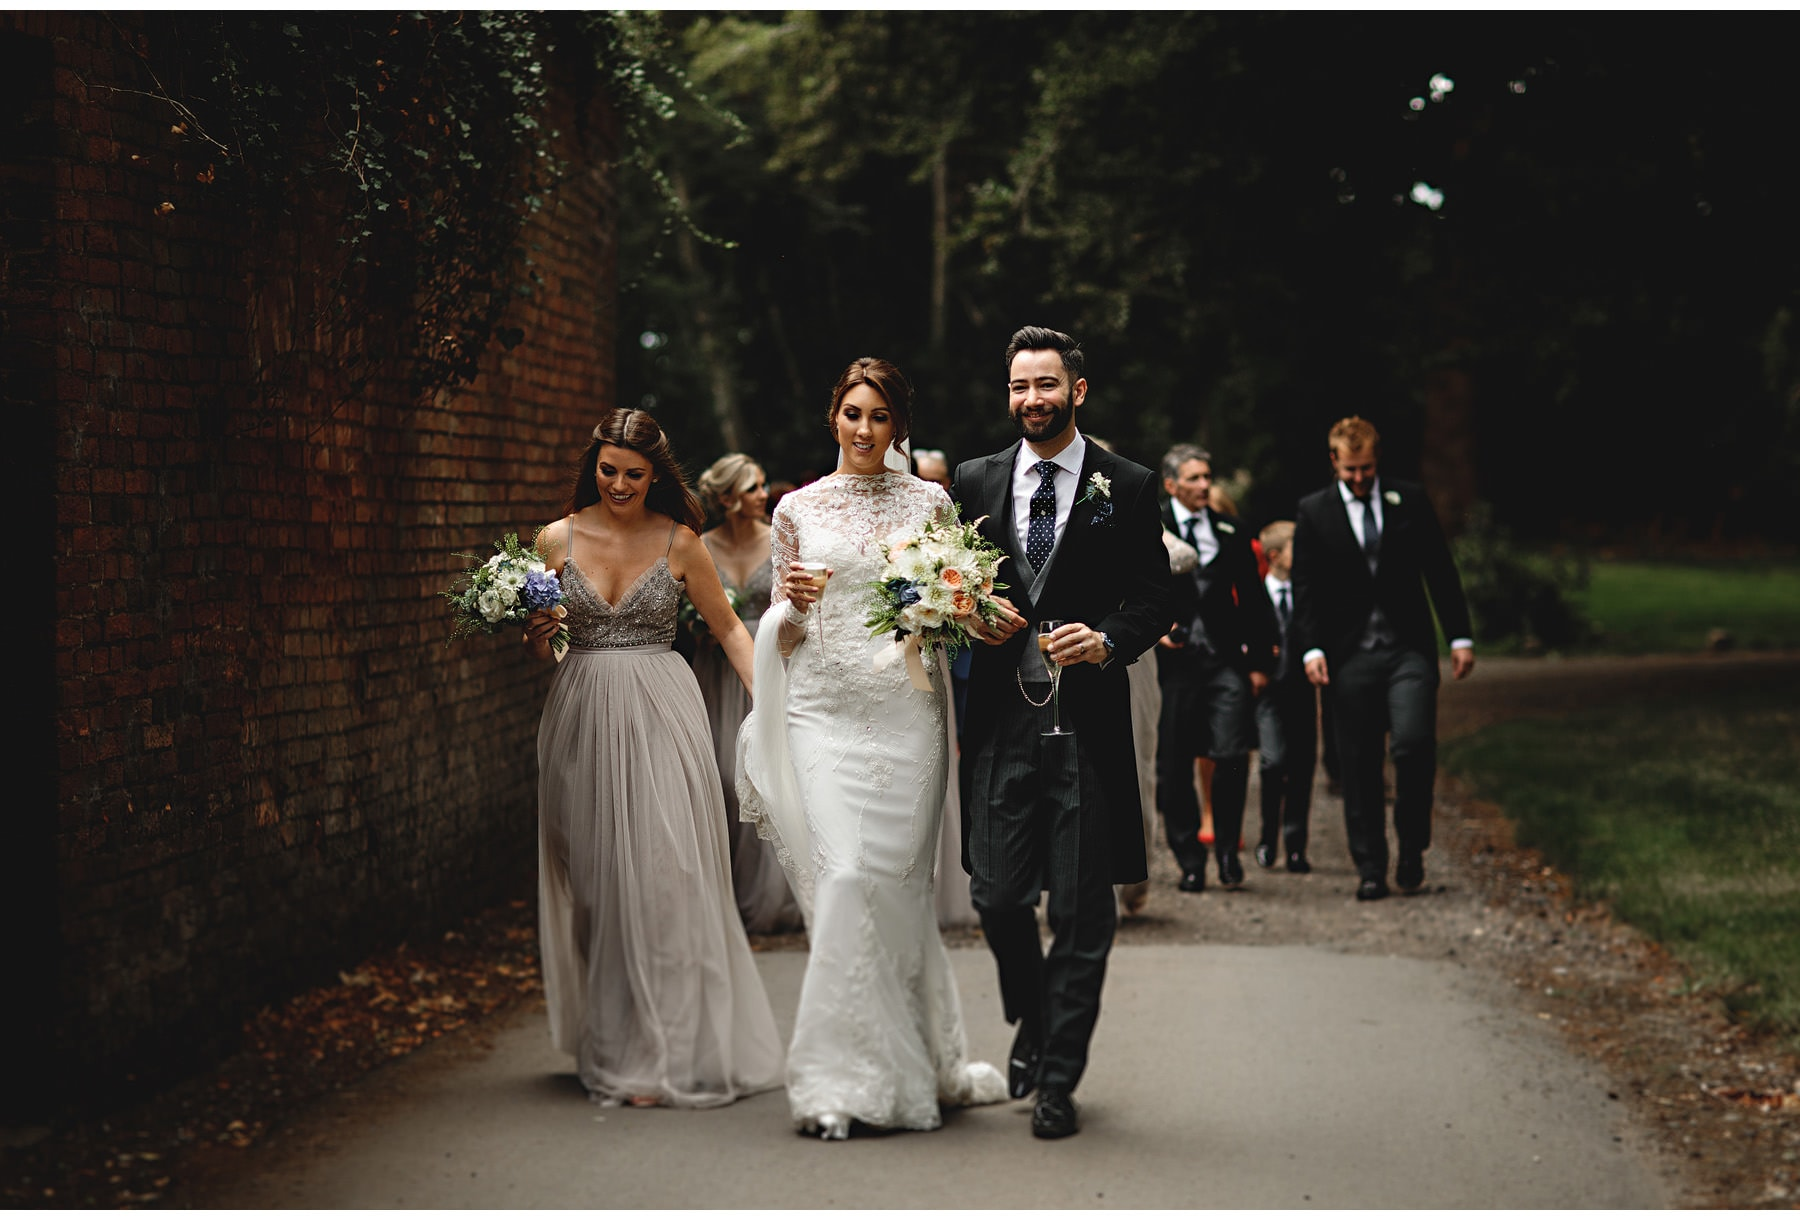 the bride and groom walking at Dprfold hall